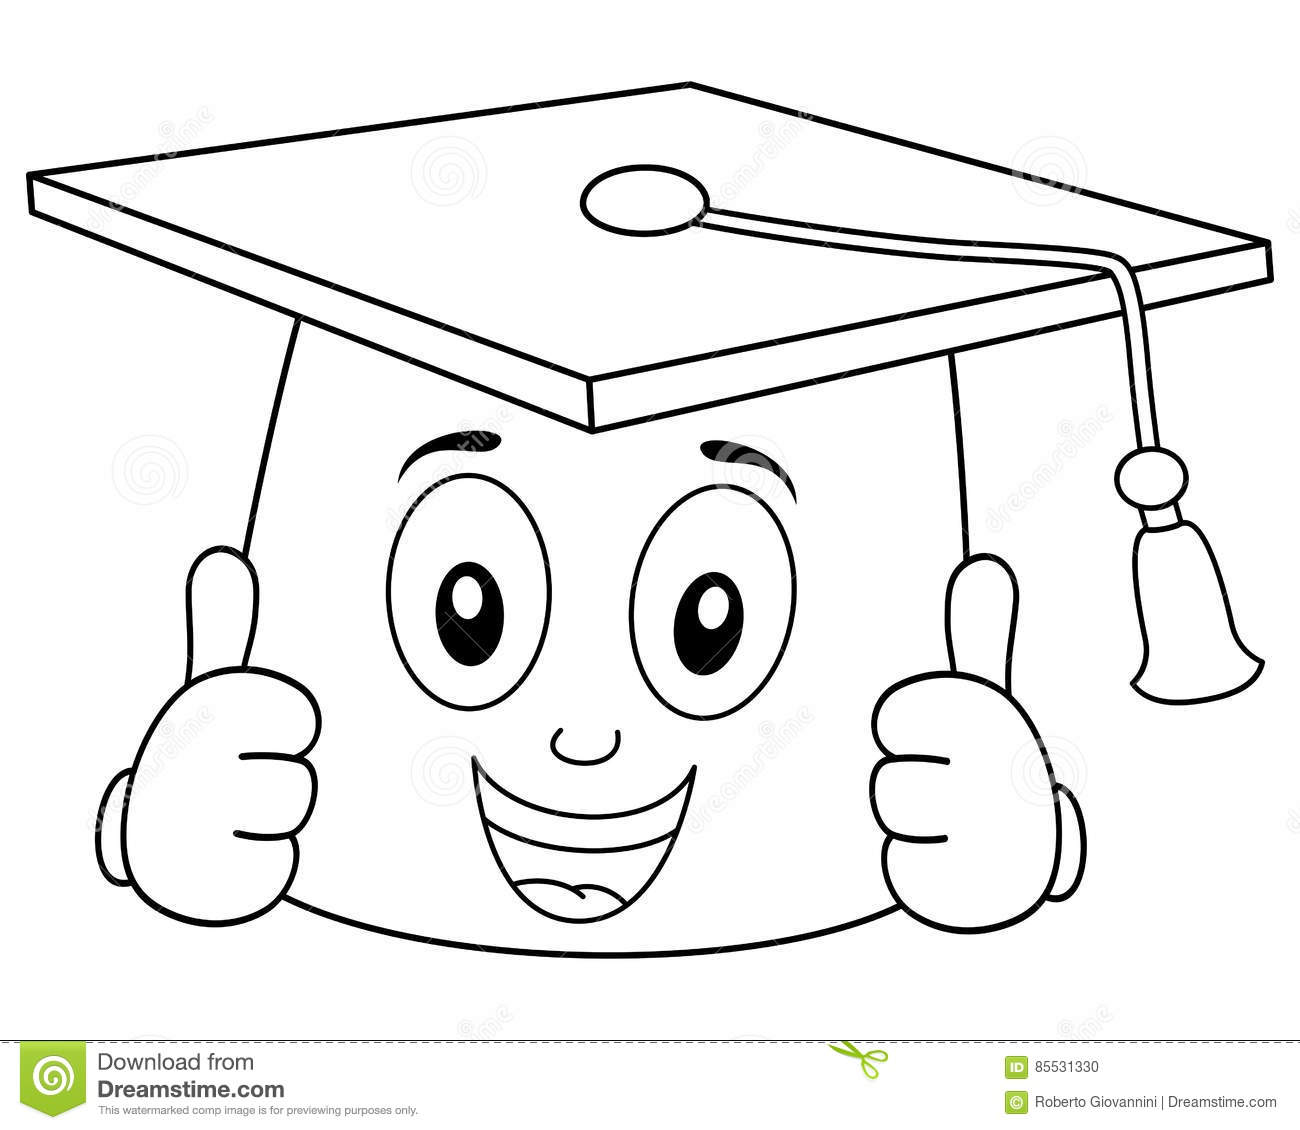 Coloring Graduation Hat With Thumbs Up Stock Vector